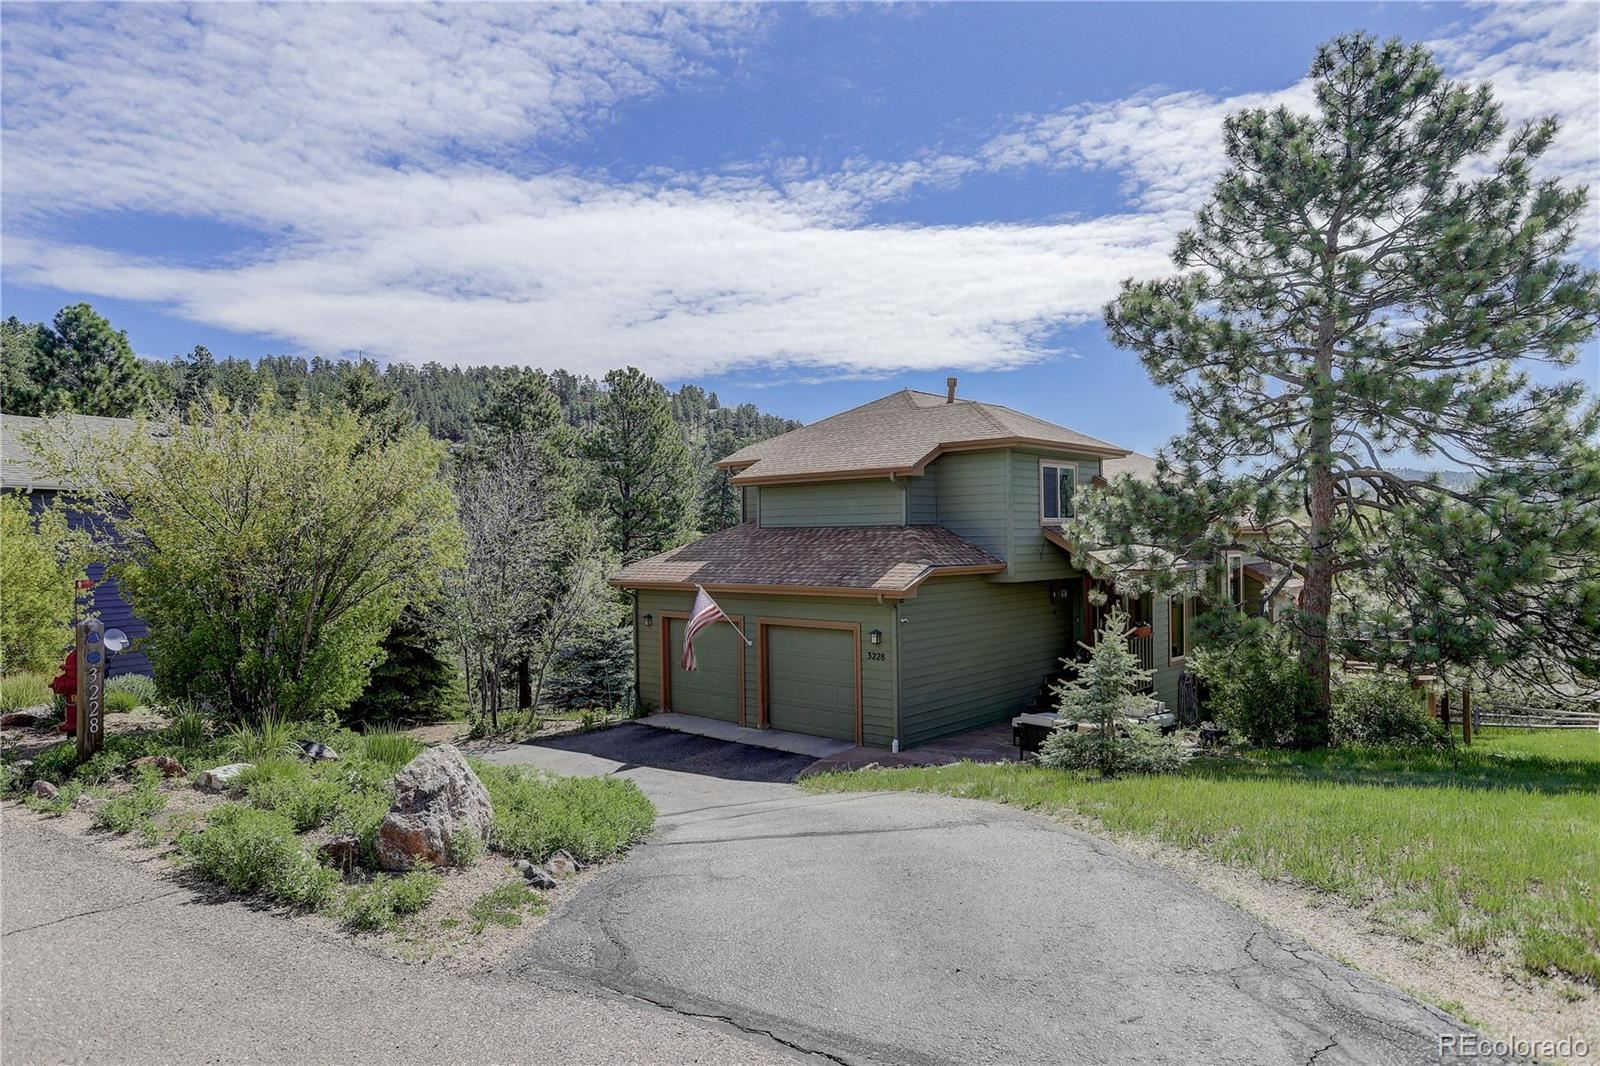 3228 Sun Ridge Lane, Evergreen, CO 80439 - #: 7104780